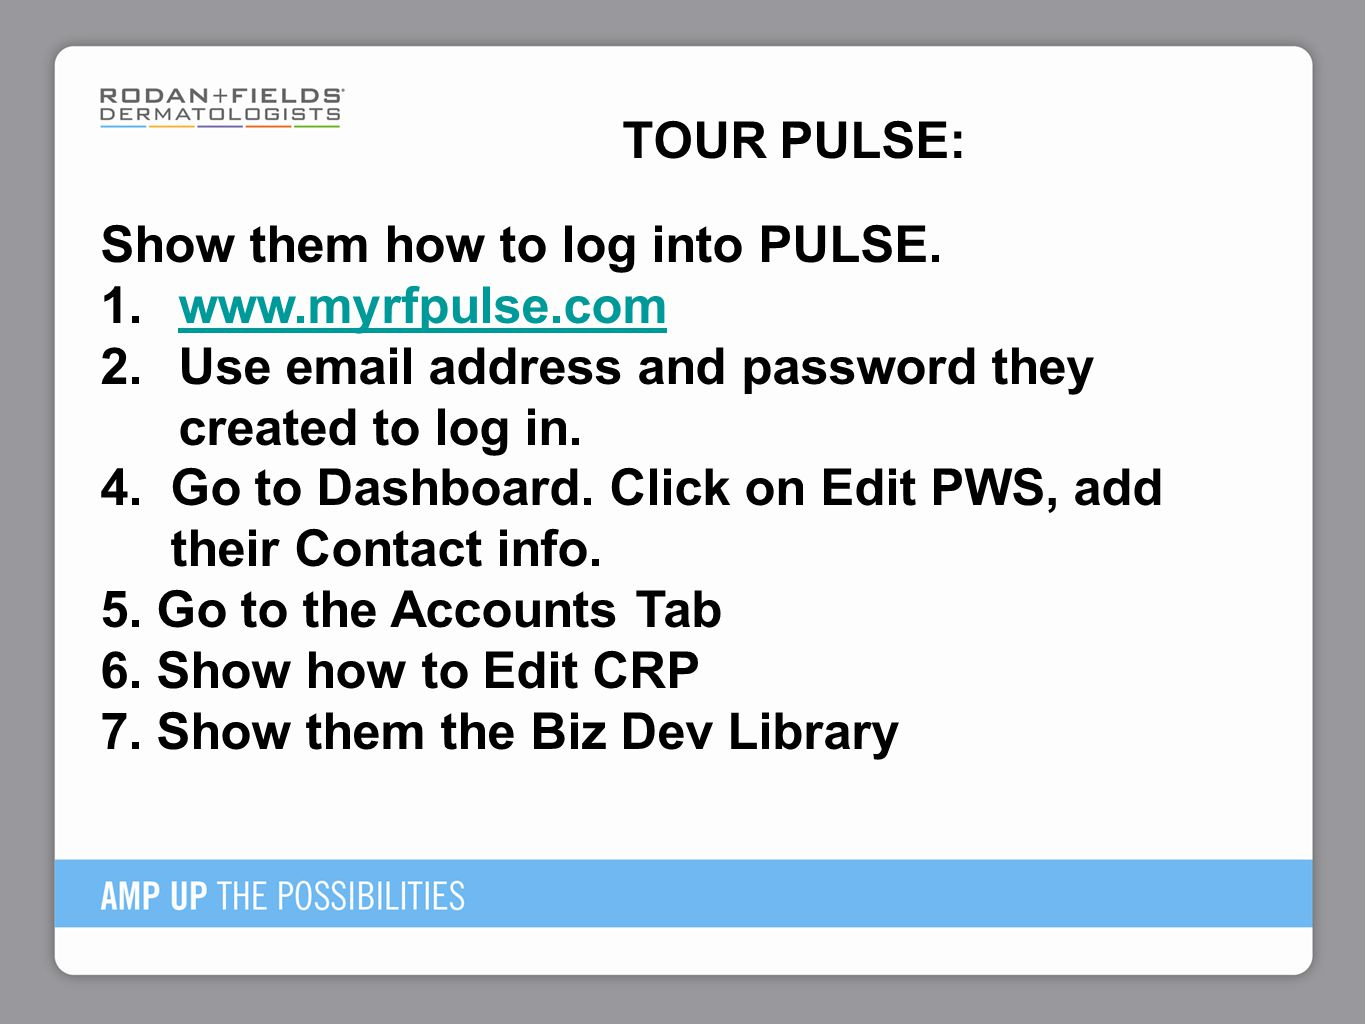 Show them how to log into PULSE.